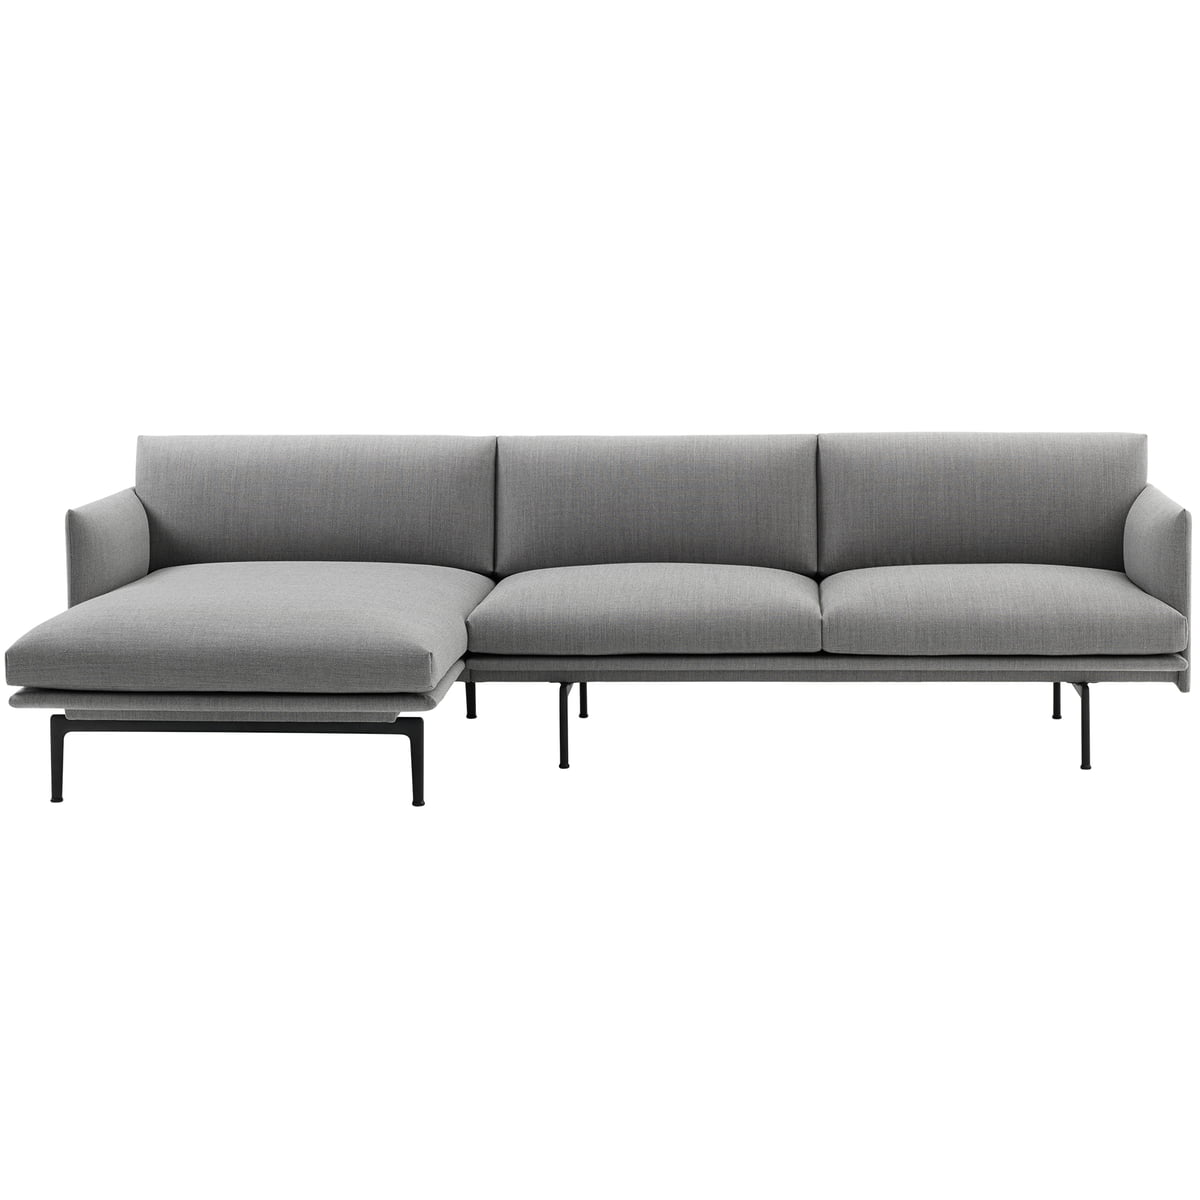 Muuto - Outline 3-Seater Sofa with Left Chaise Longue, grey (Fiord 151) /  black (RAL 9017)